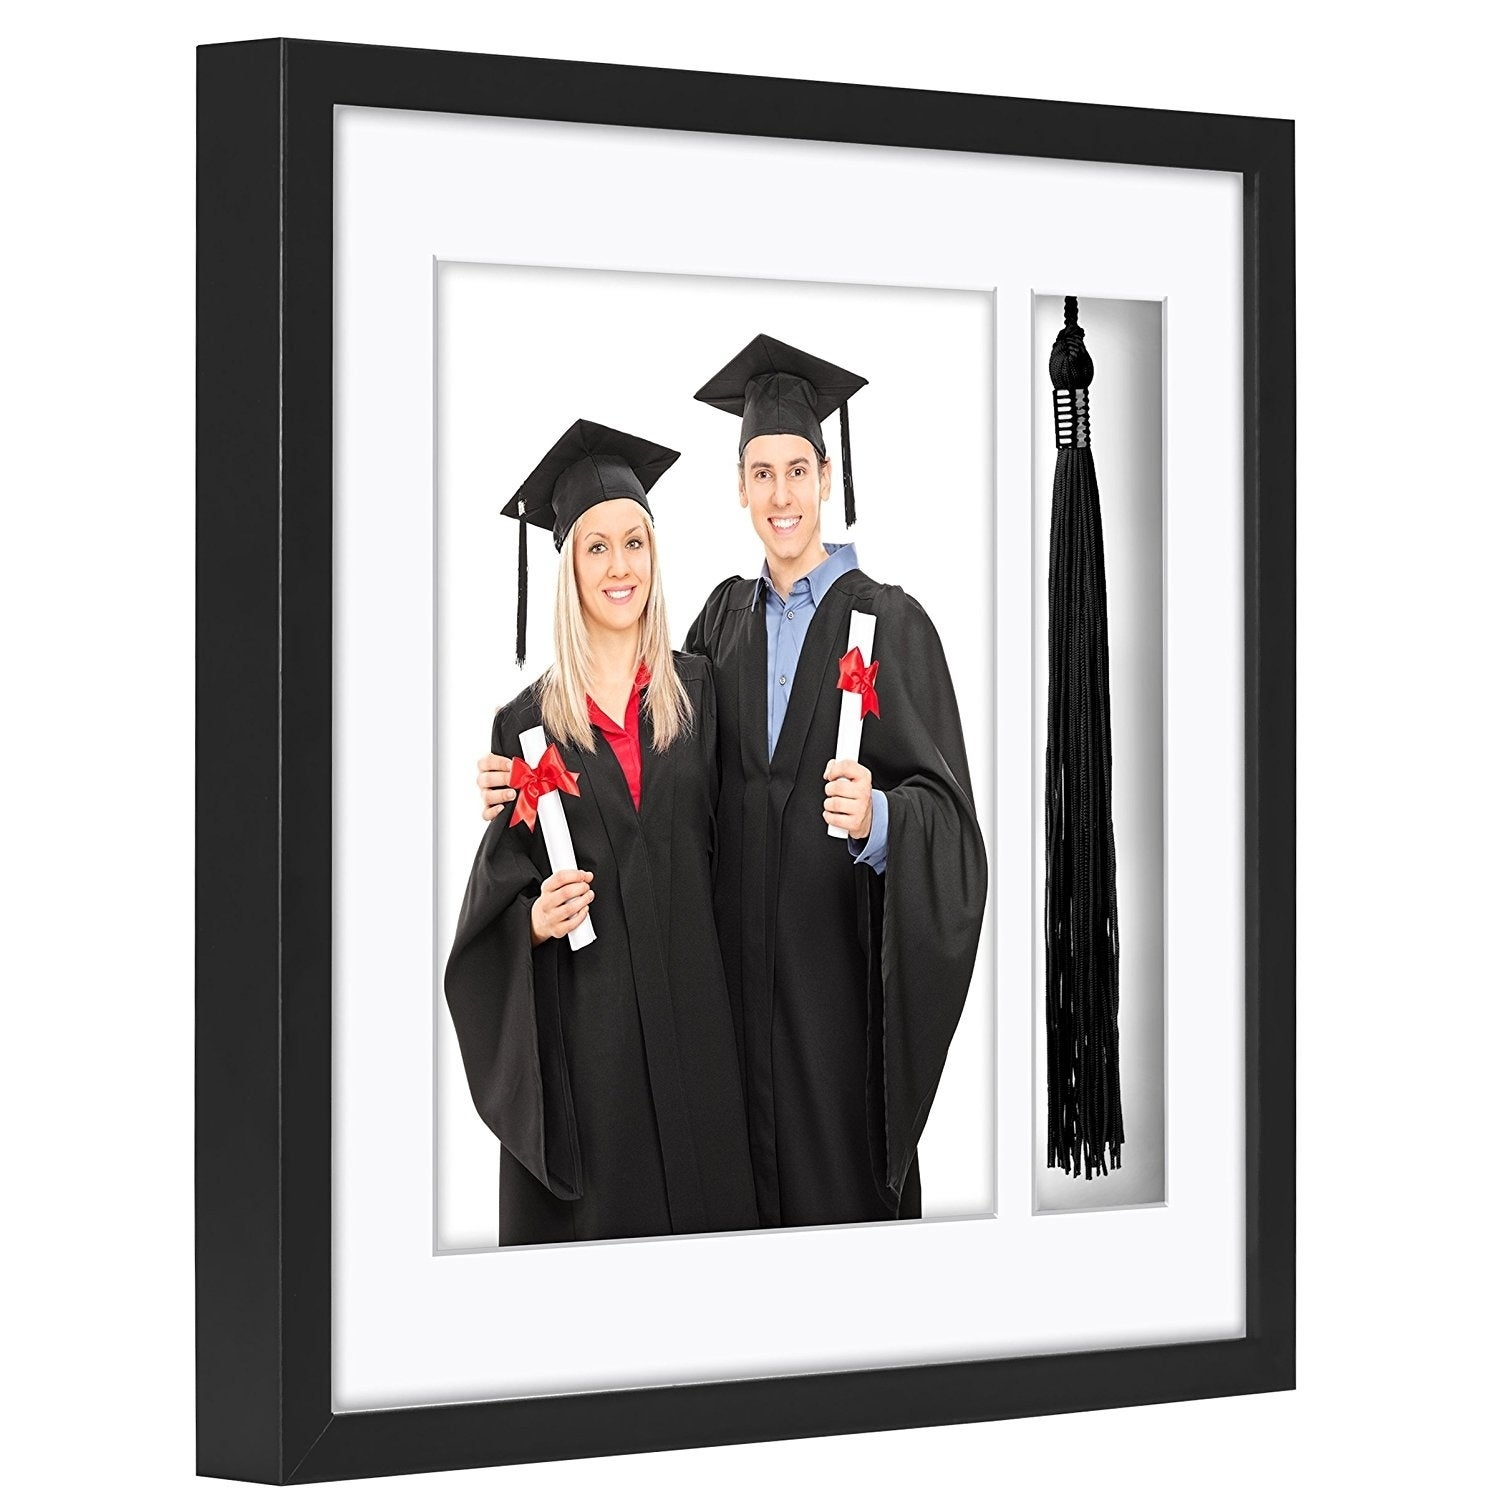 Americanflat Black Tassel Frame Made To Display 8x10 Inch Photo And Standard Sized Tassel Shadow Box 1 5 Inches Deep Overstock 21666156